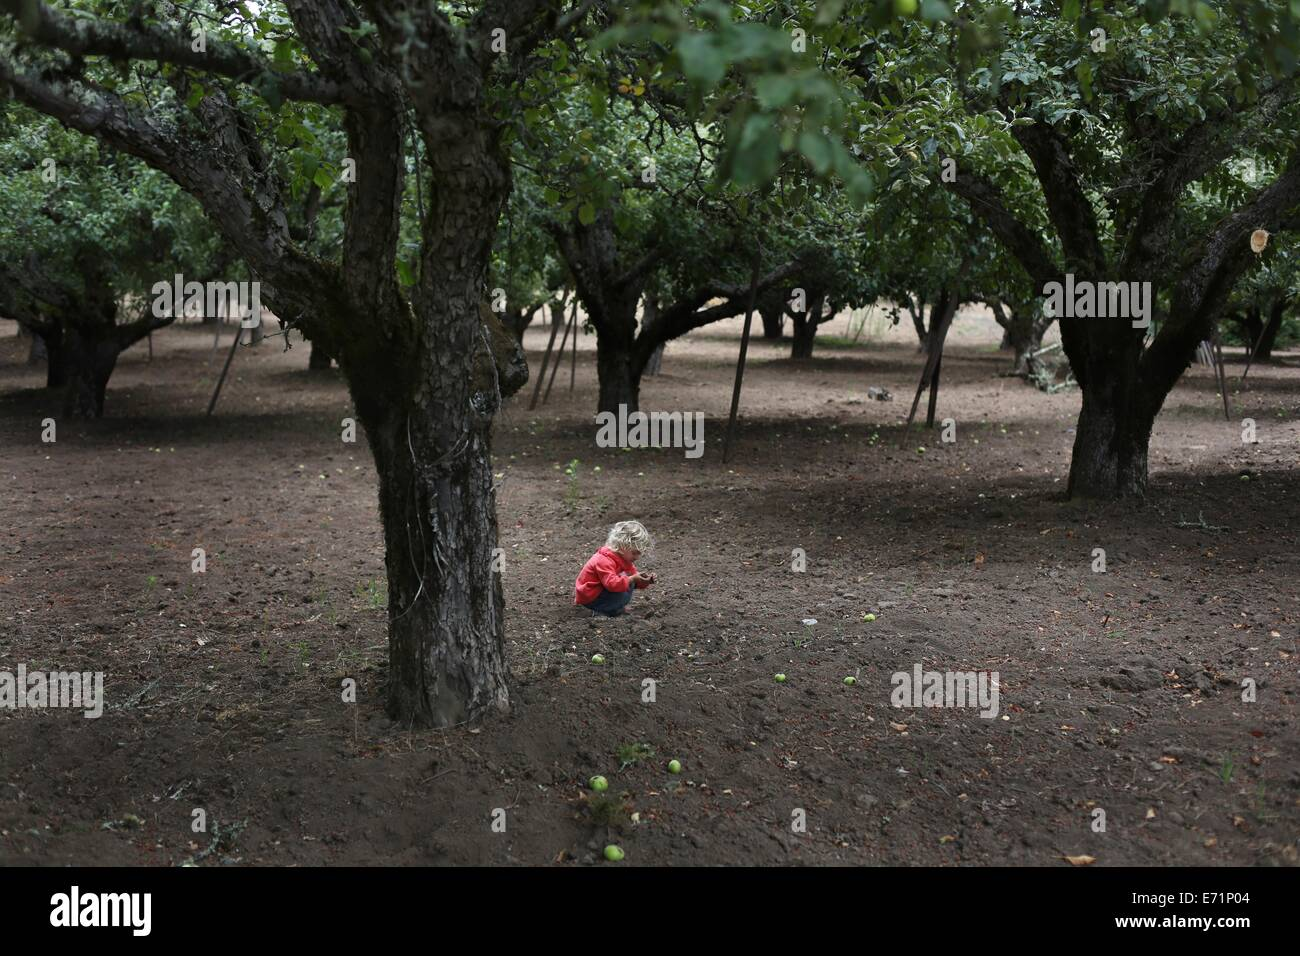 A small child squatting down to look at something in an orchard. - Stock Image